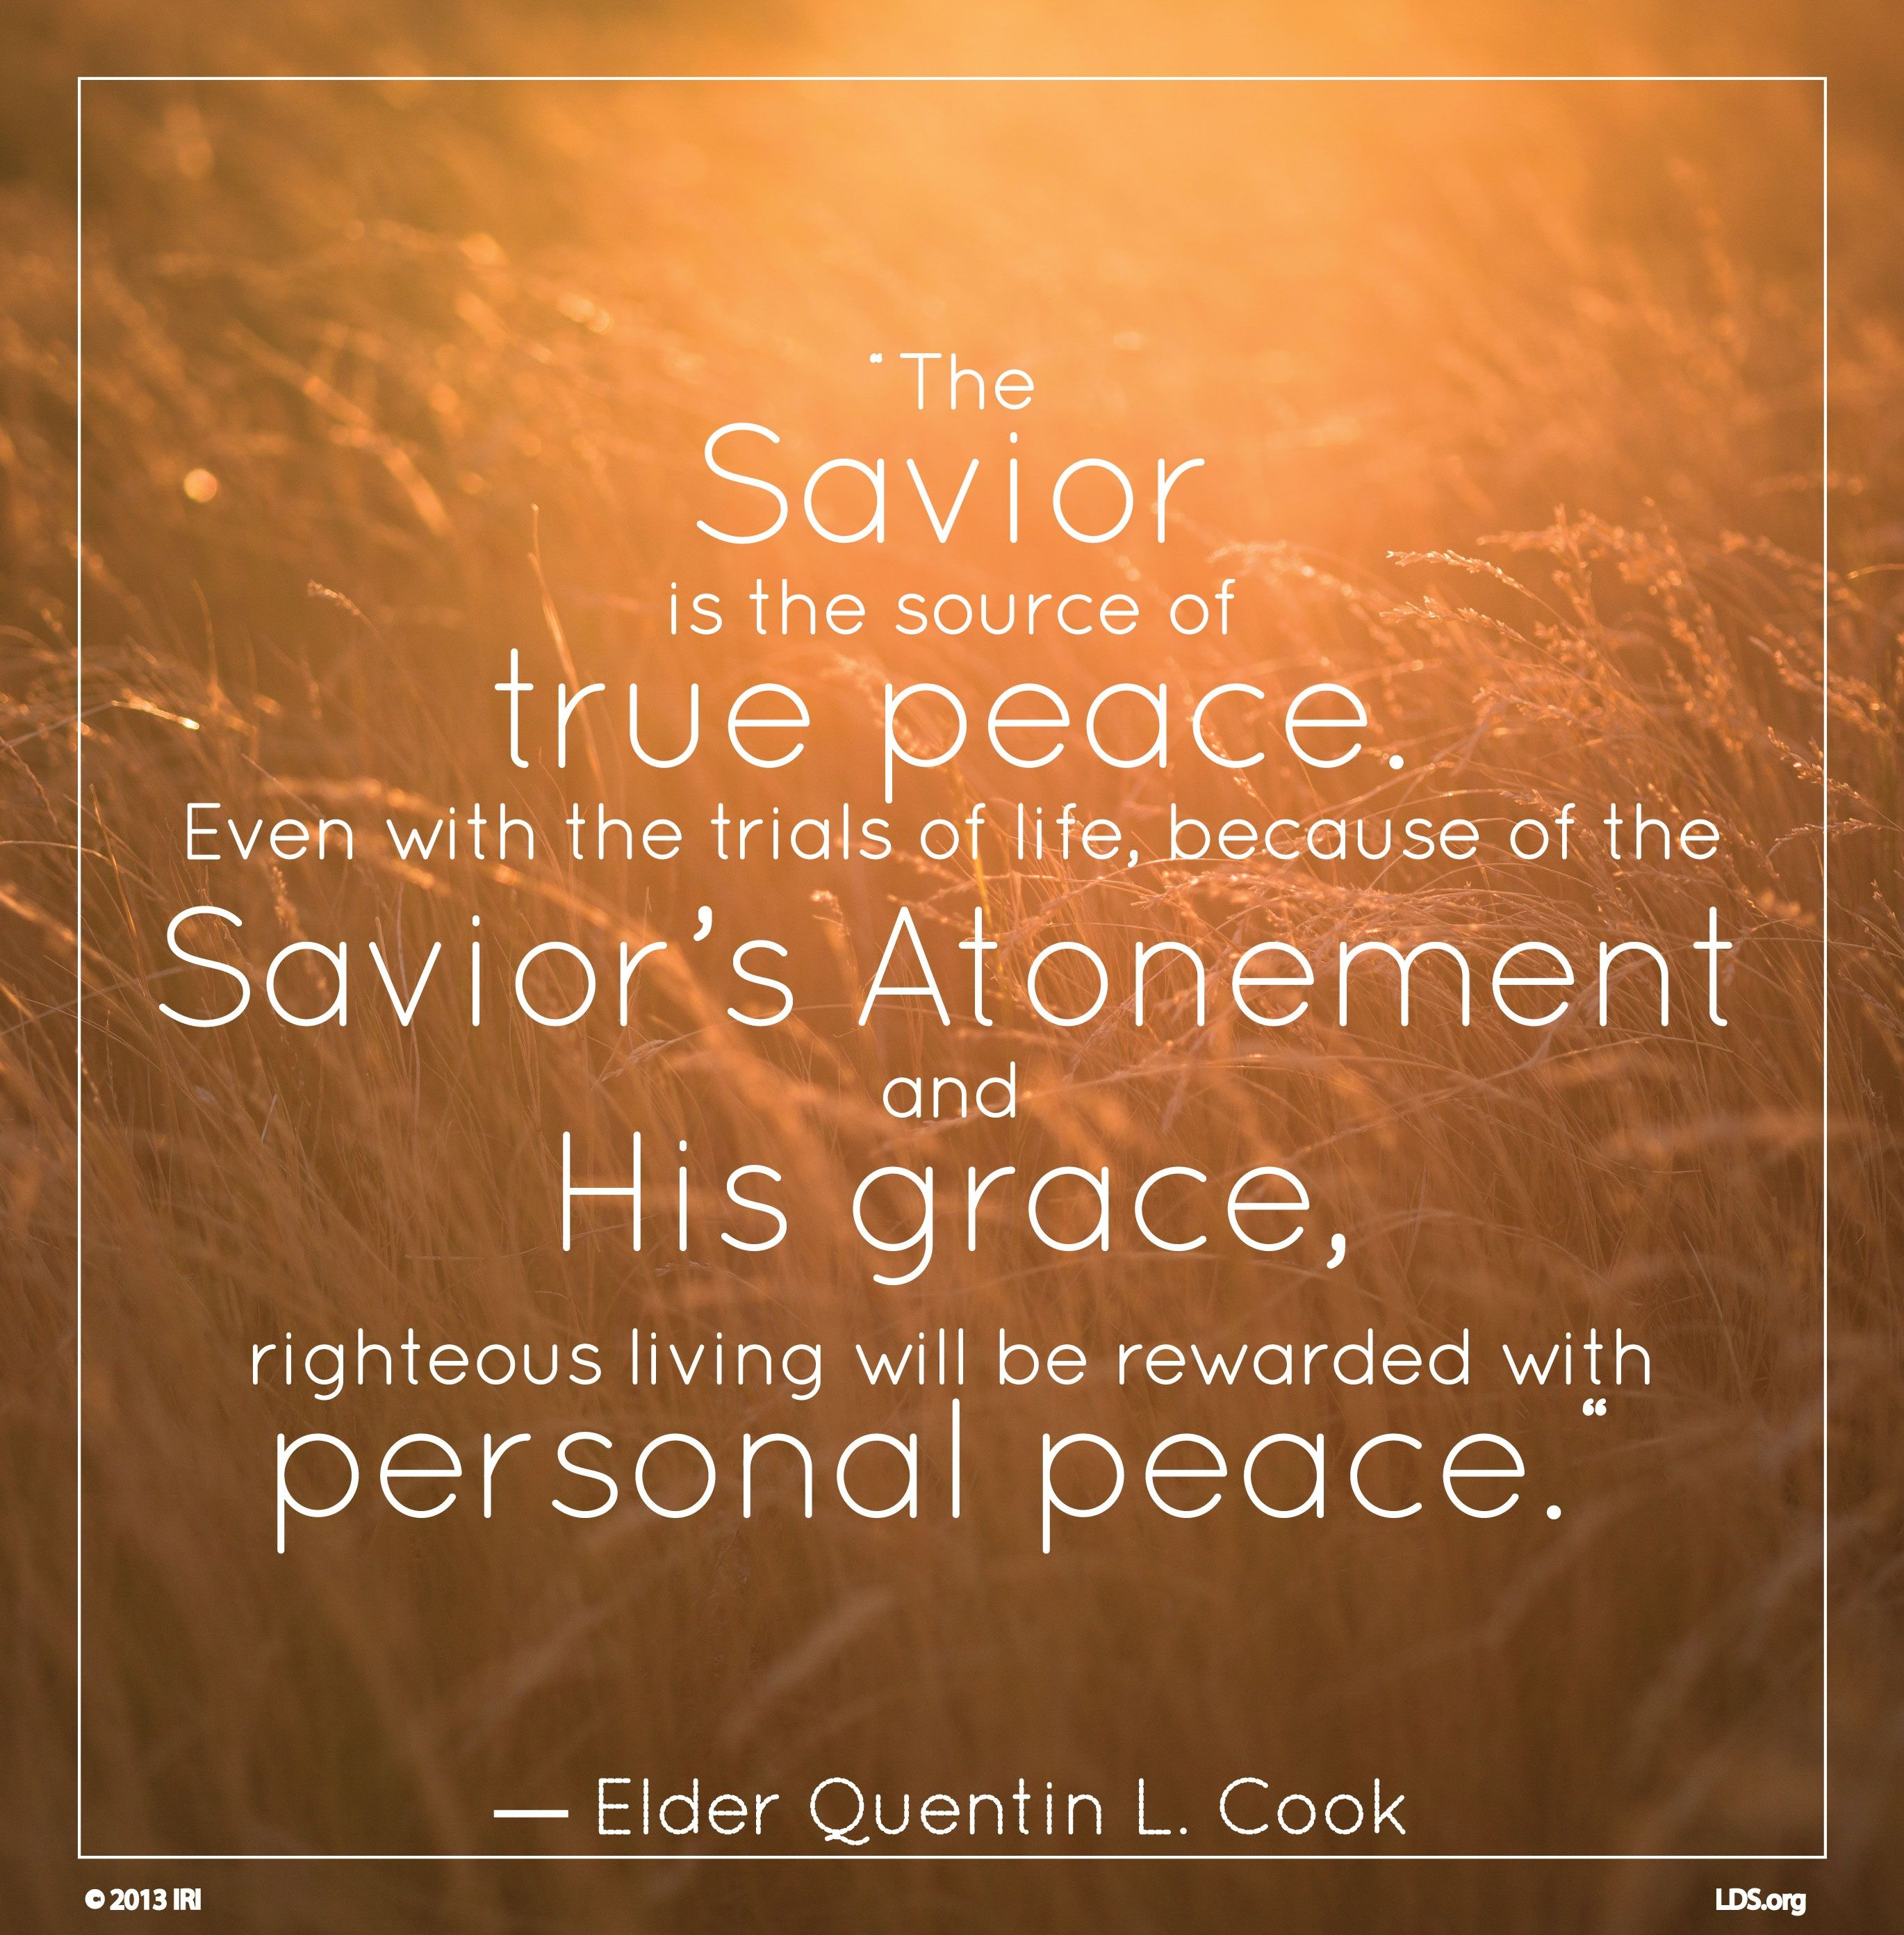 """""""The Savior is the source of true peace. Even with the trials of life, because of the Savior's Atonement and His grace, righteous living will be rewarded with personal peace.""""—Elder Quentin L. Cook, """"Personal Peace: The Reward of Righteousness"""""""